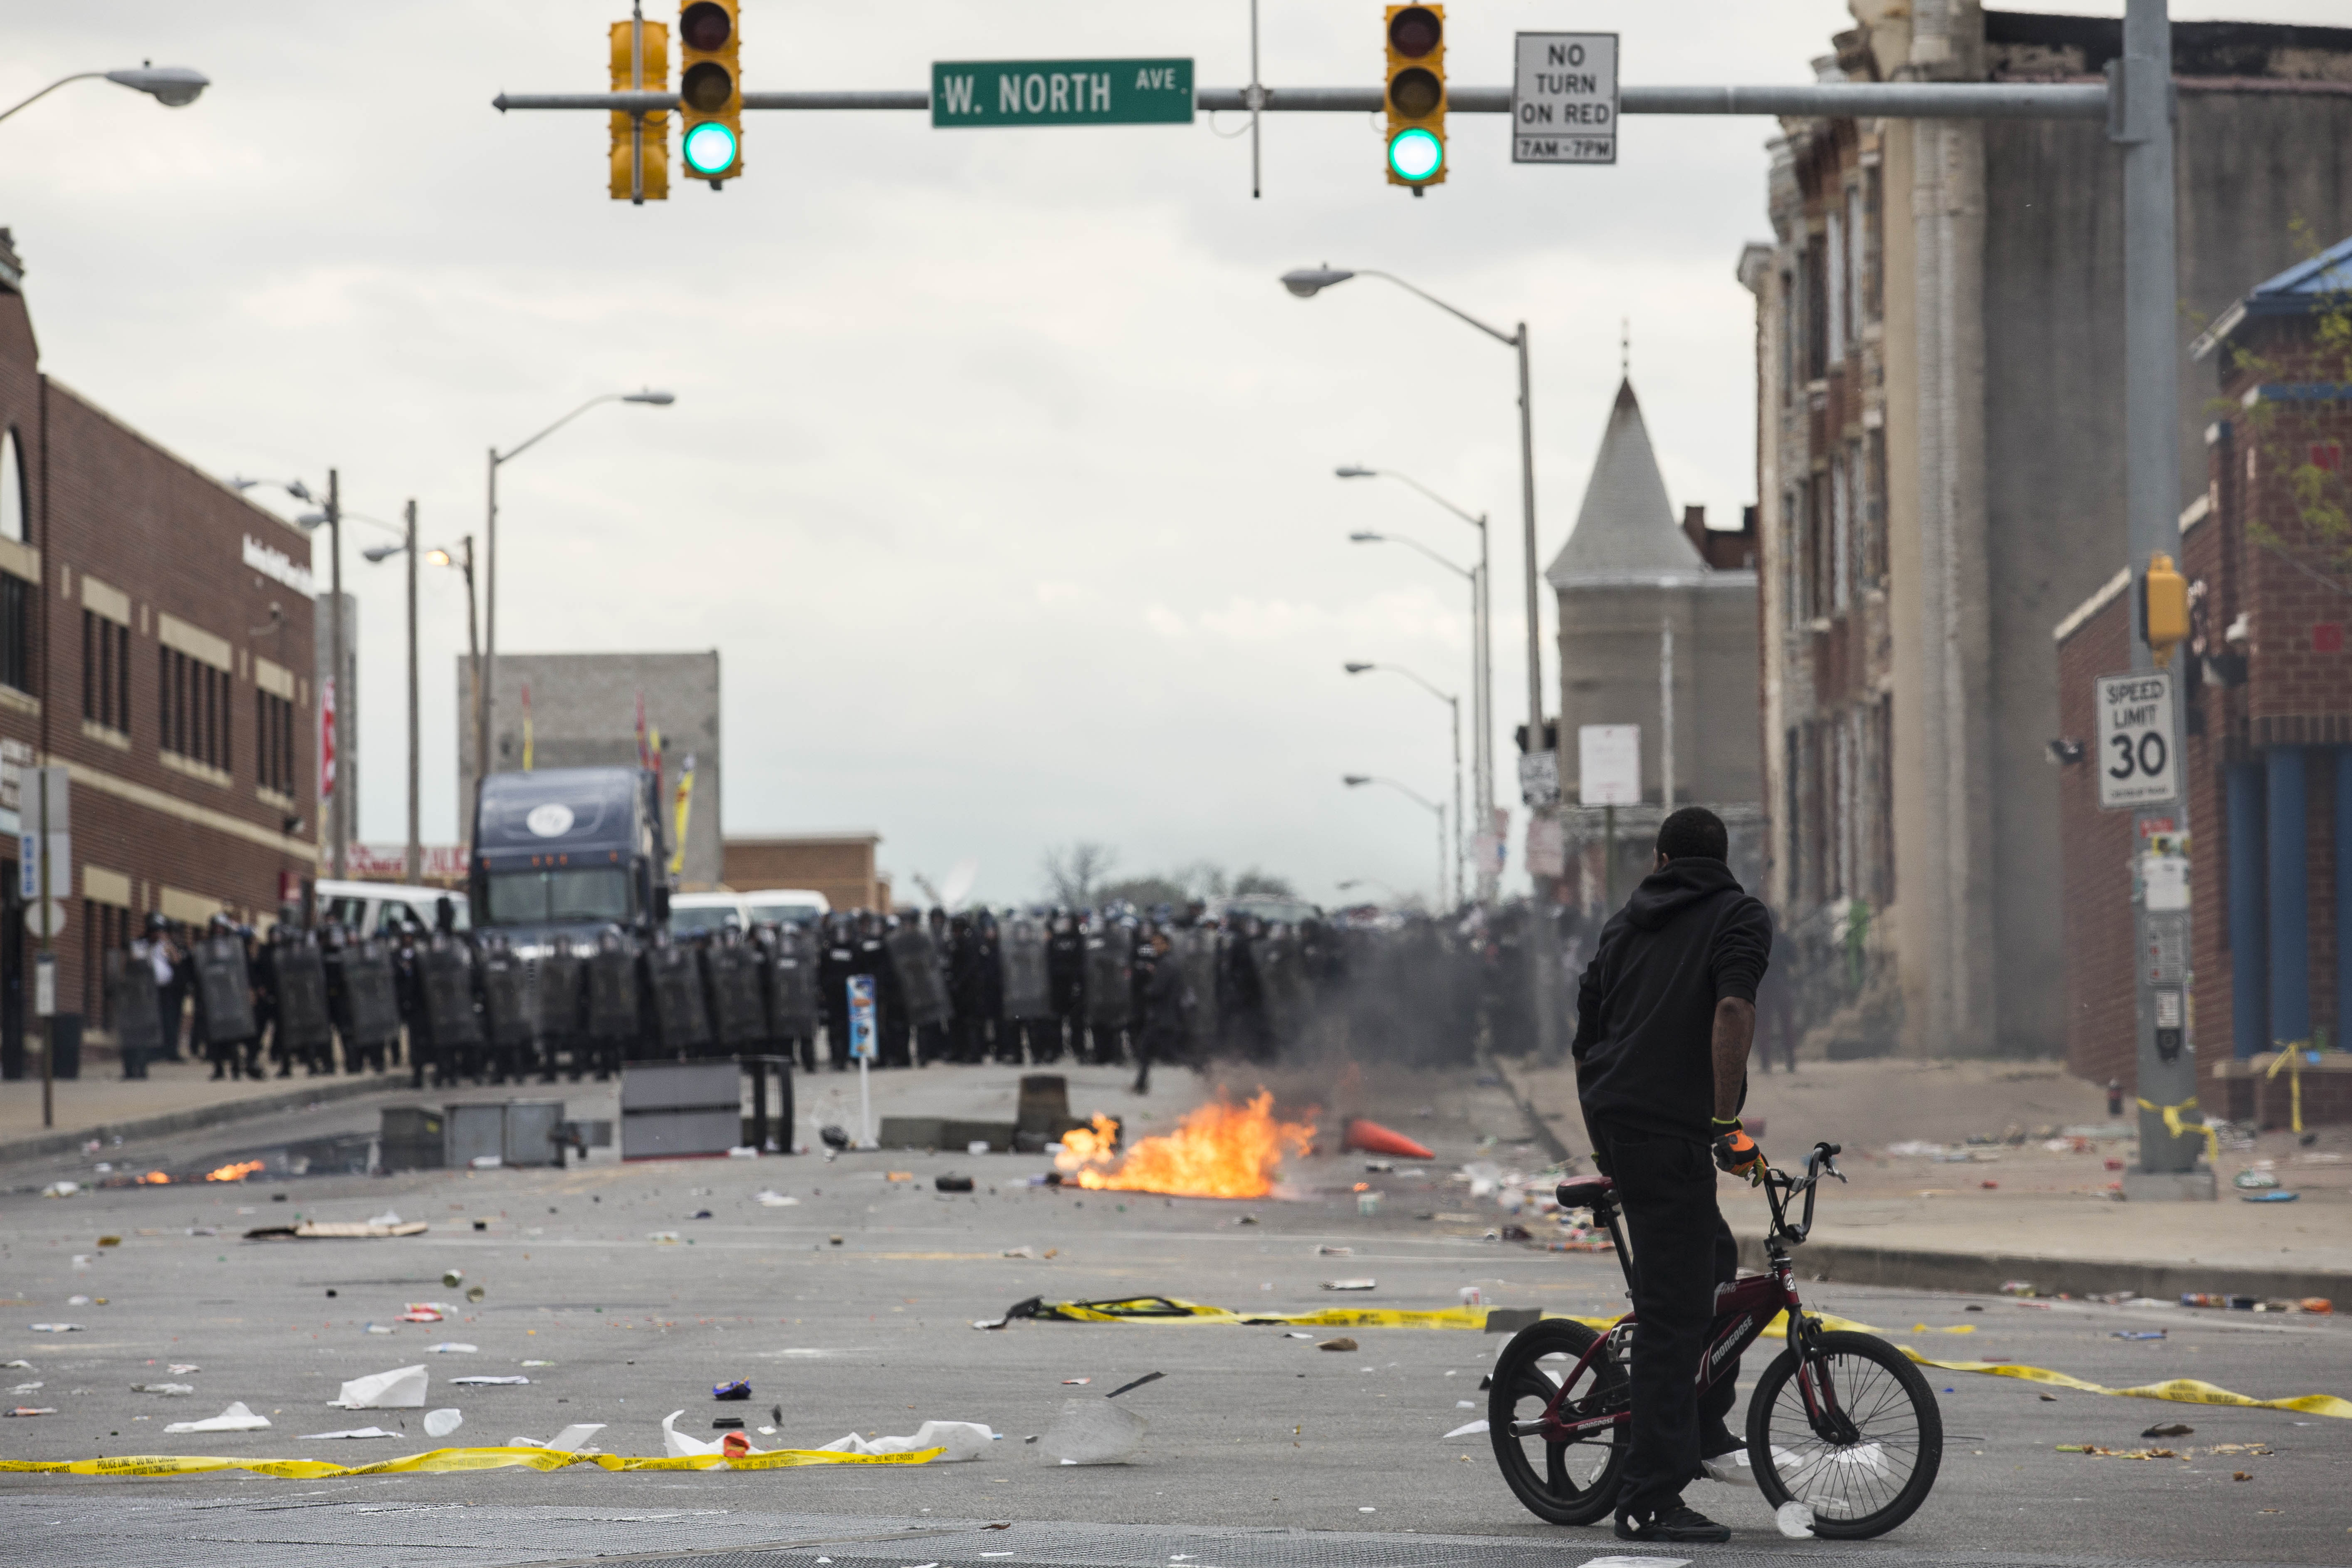 Baltimore police officers in riot gear push protestors back along - Baltimore Protests Fire